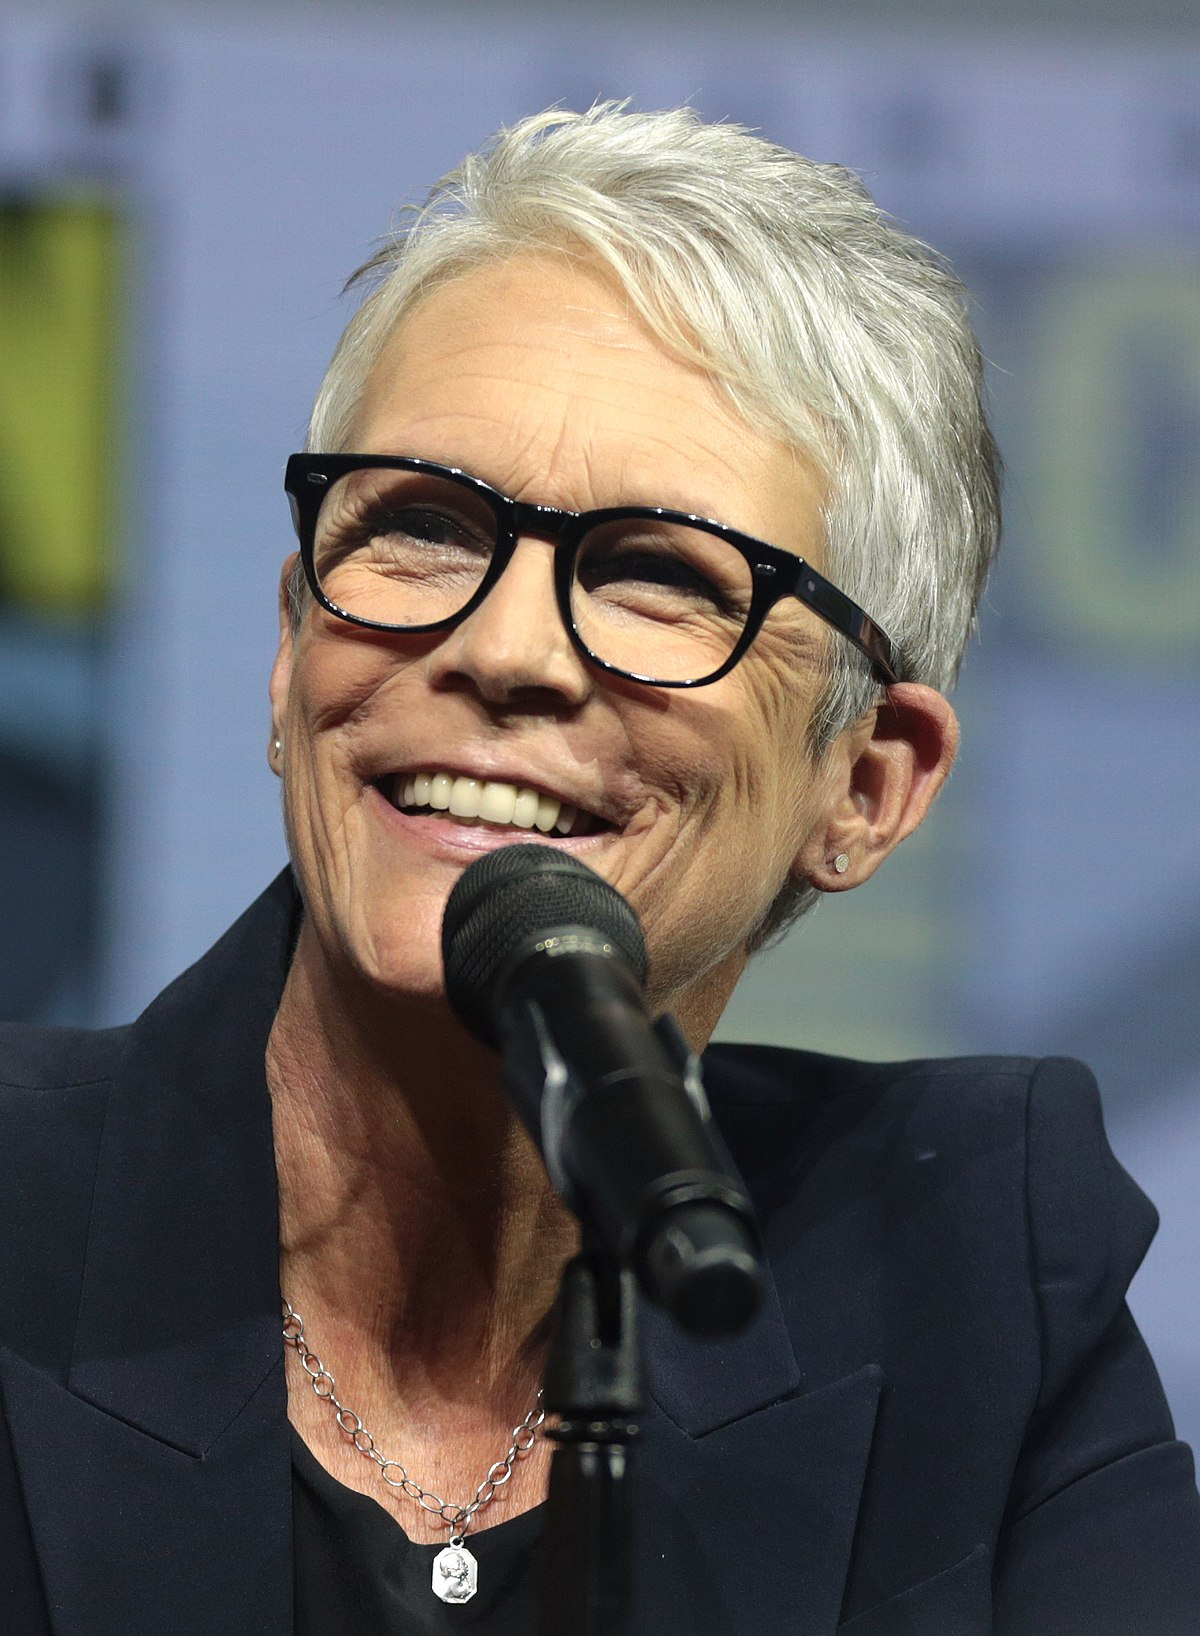 Jamie Lee Curtis - Wikipedia